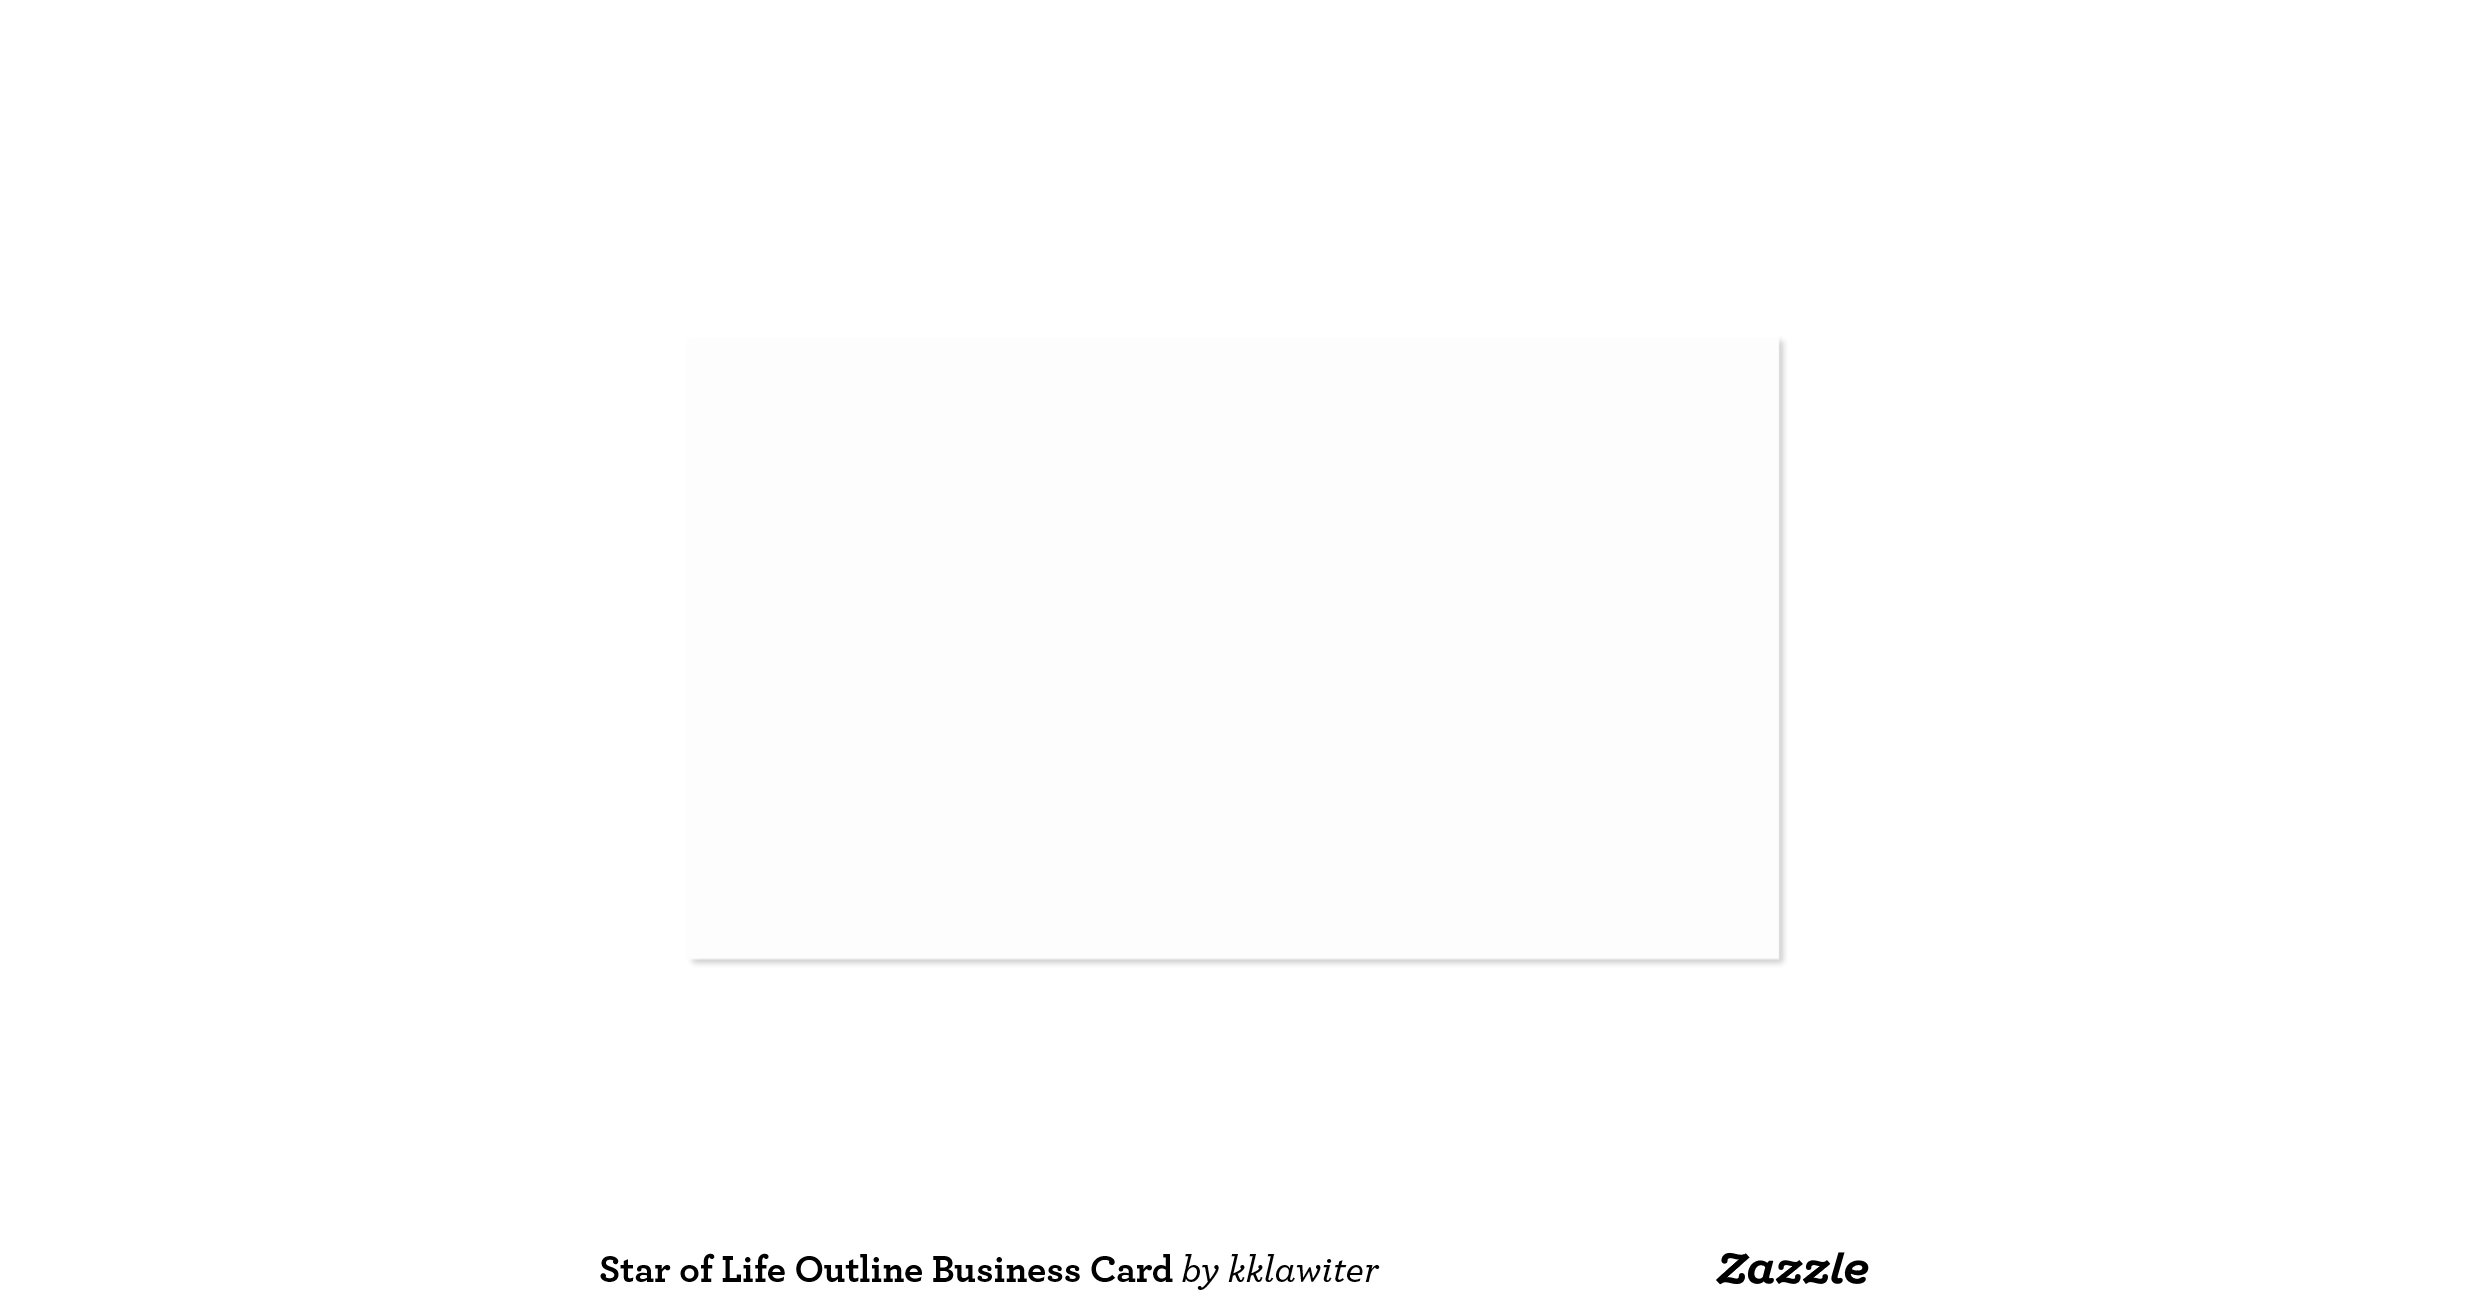 Star_of_life_outline_business_card